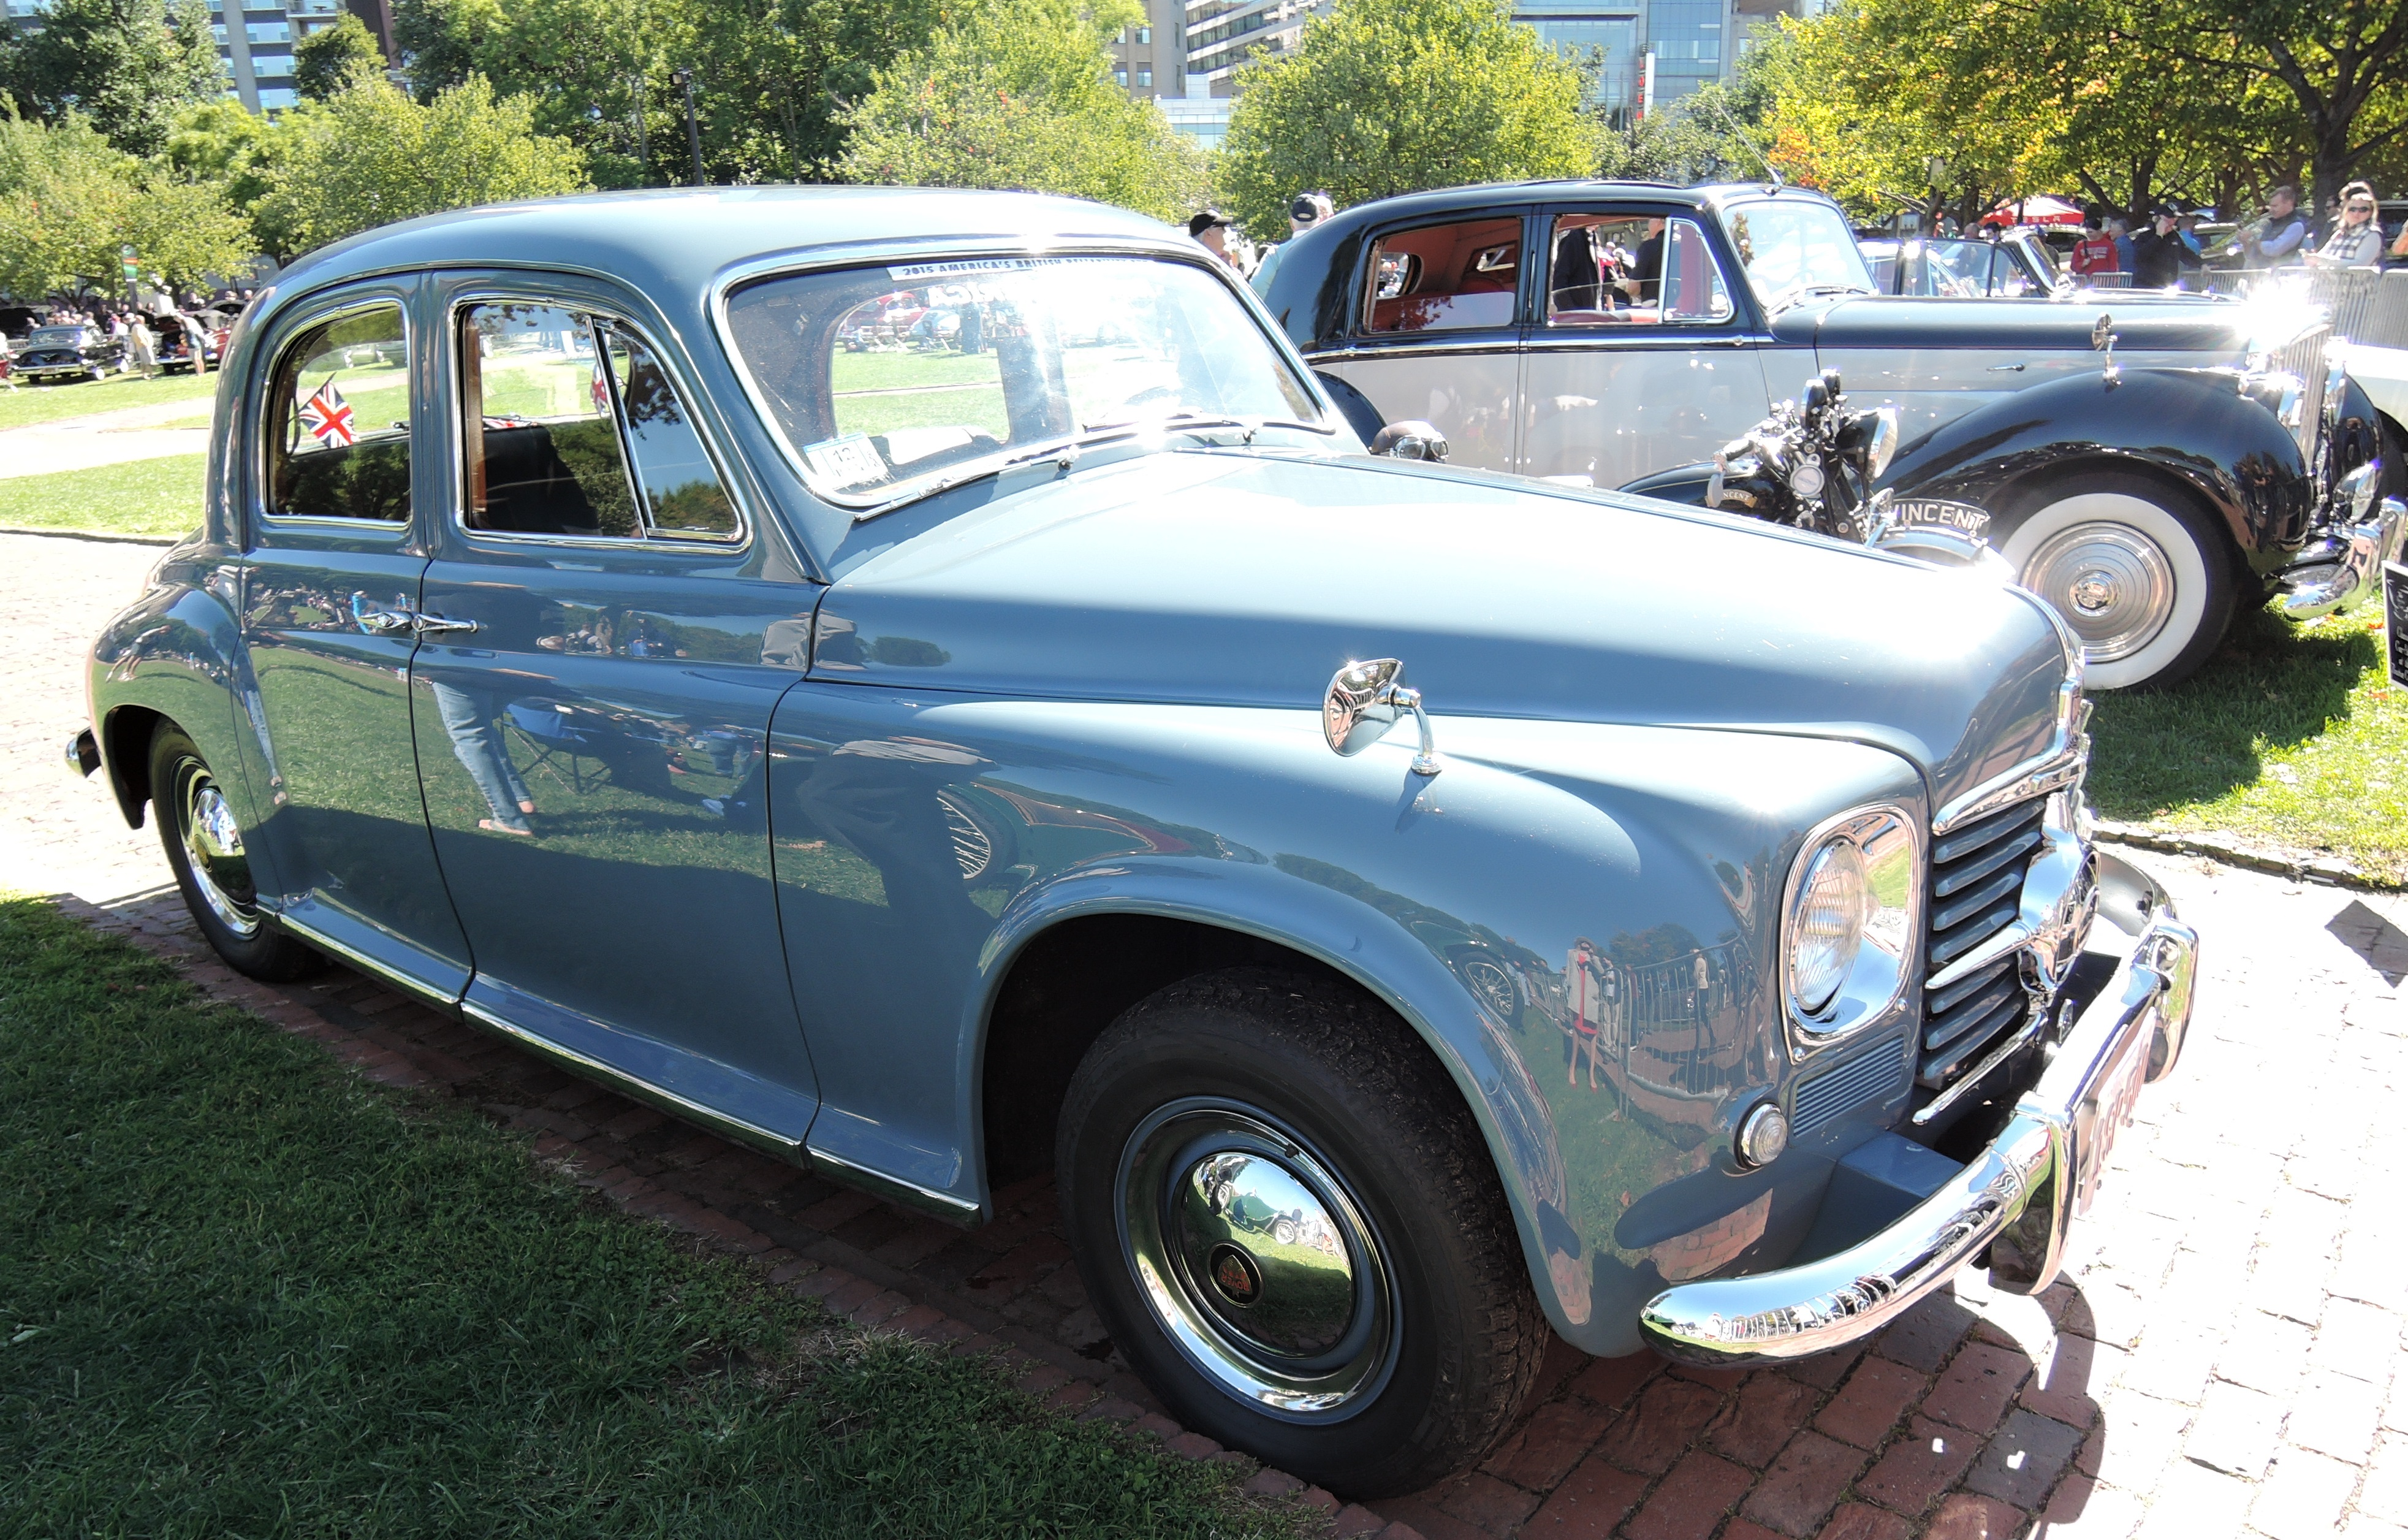 grey 1950 Rover 75 Cyclops - The Boston Cup on Boston Common